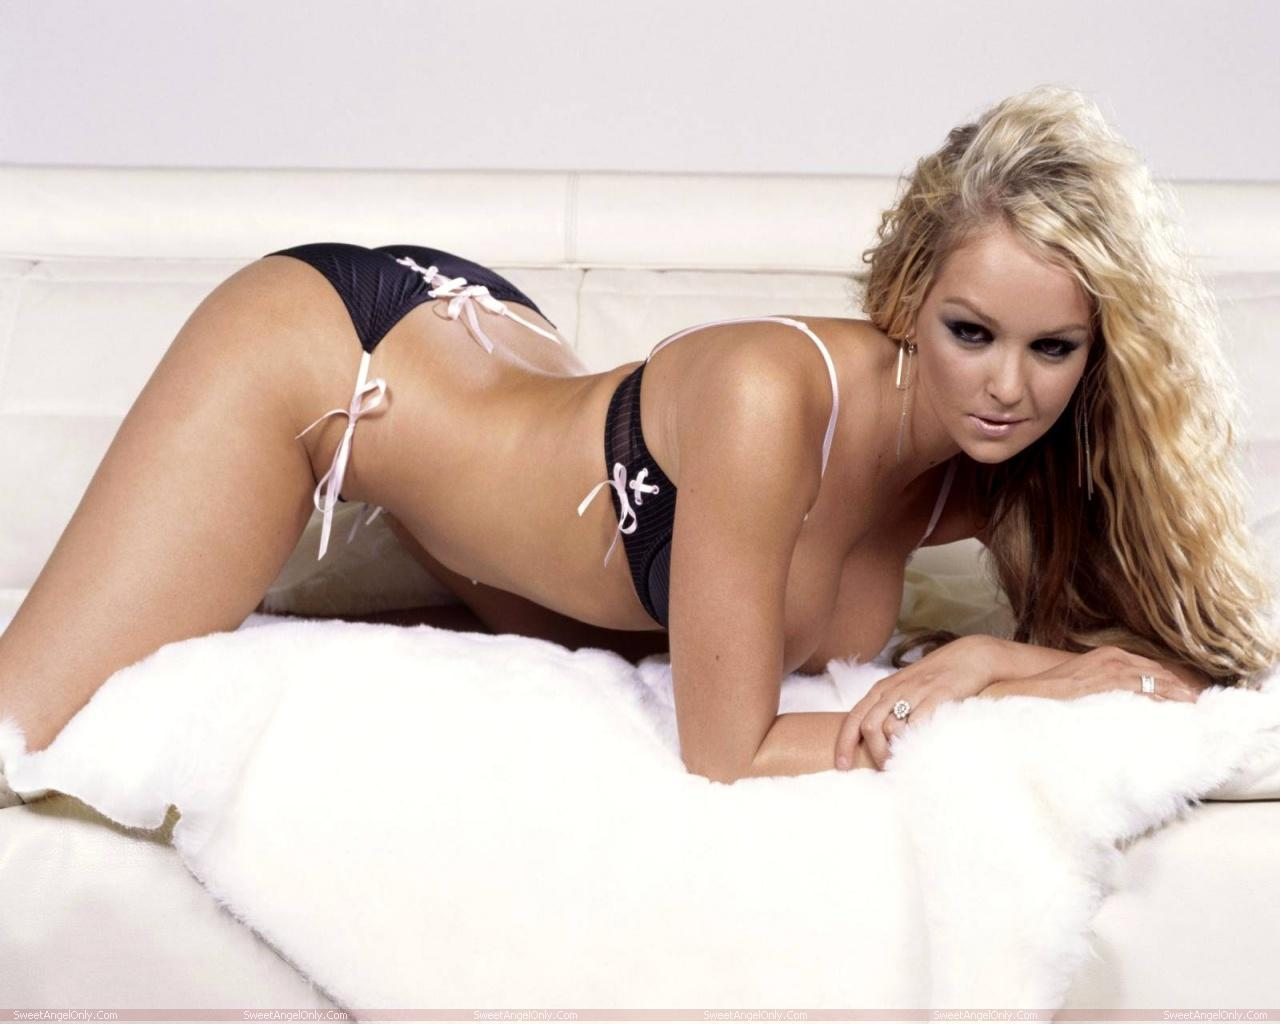 http://4.bp.blogspot.com/-N5k9BKcp0Qw/TWZWUBNXcmI/AAAAAAAAEpY/YkuypYU7oyo/s1600/actress_jennifer_ellison_hot_wallpapers_in_bikini_sweetangelonly_24.jpg